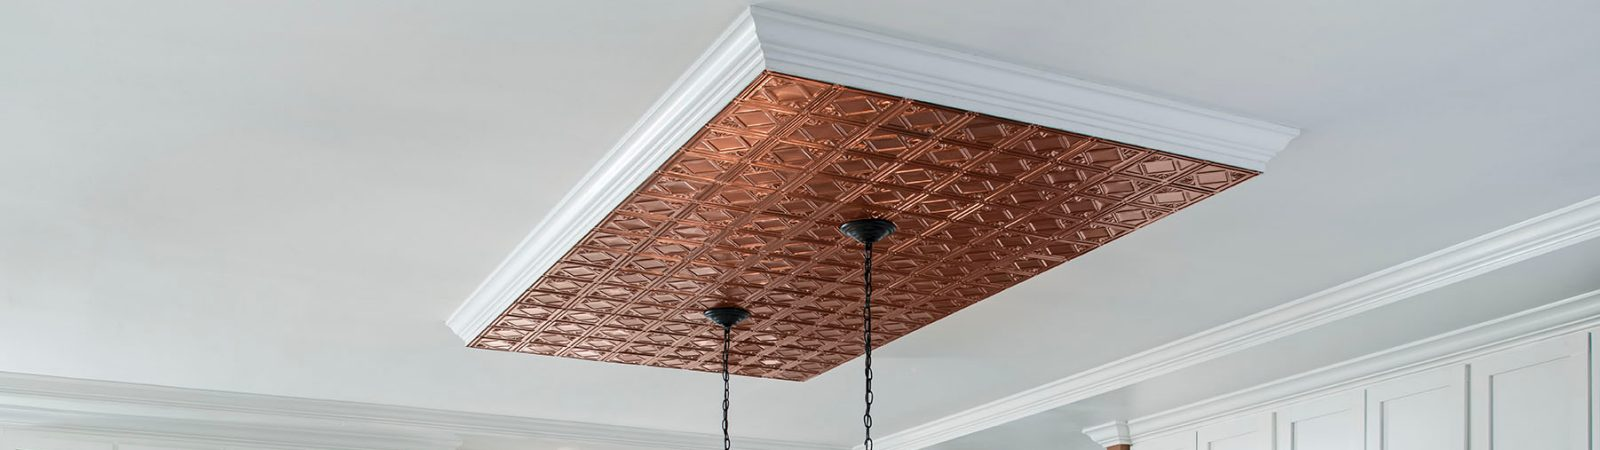 wine direct nail grid ceiling ceilings afrocanmedia mount up tiles art tile surface drop acoustic apply com flush line